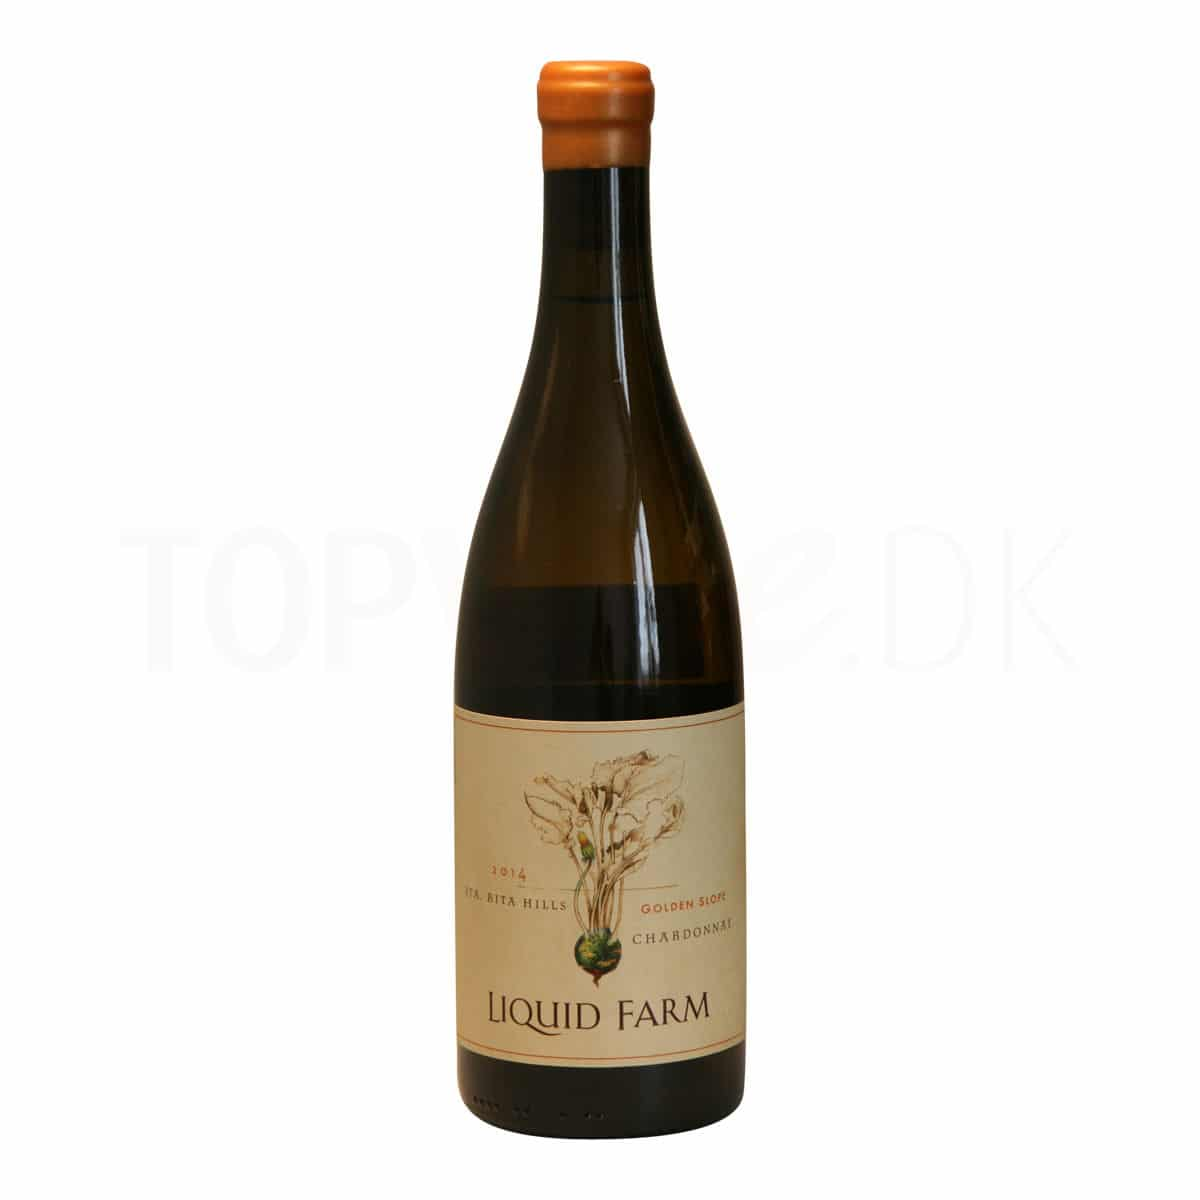 Topvine Liquid Farm Golden Slope Chardonnay 2014